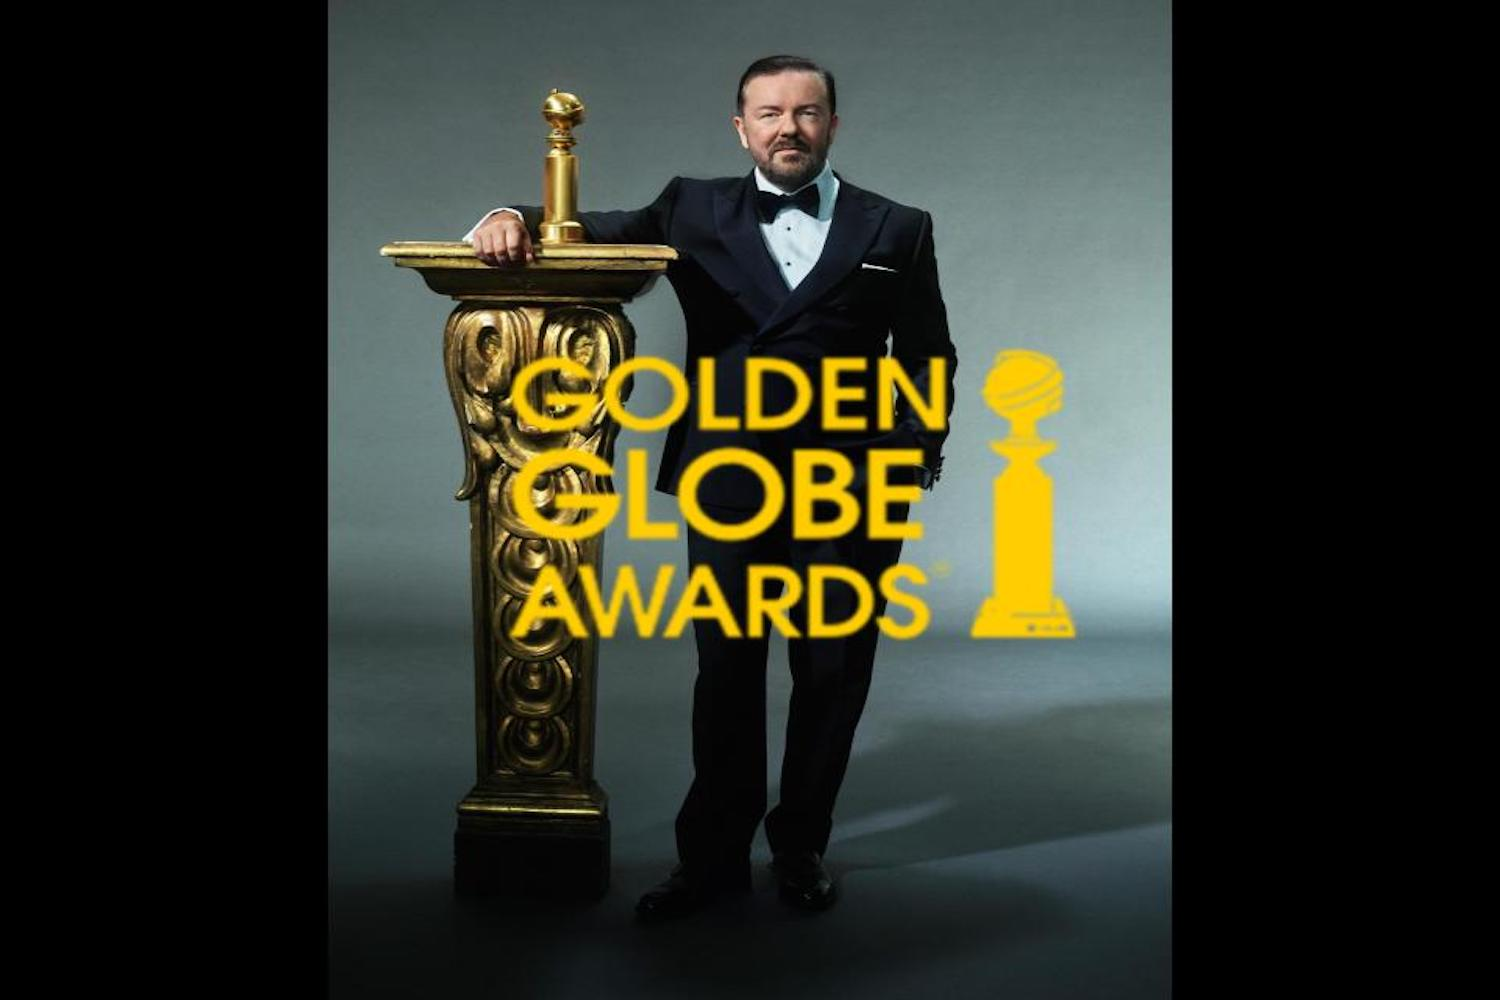 Controversial Mr. Ricky Gervais hosted the Golden Globes January 5, for what he says will be the last time.